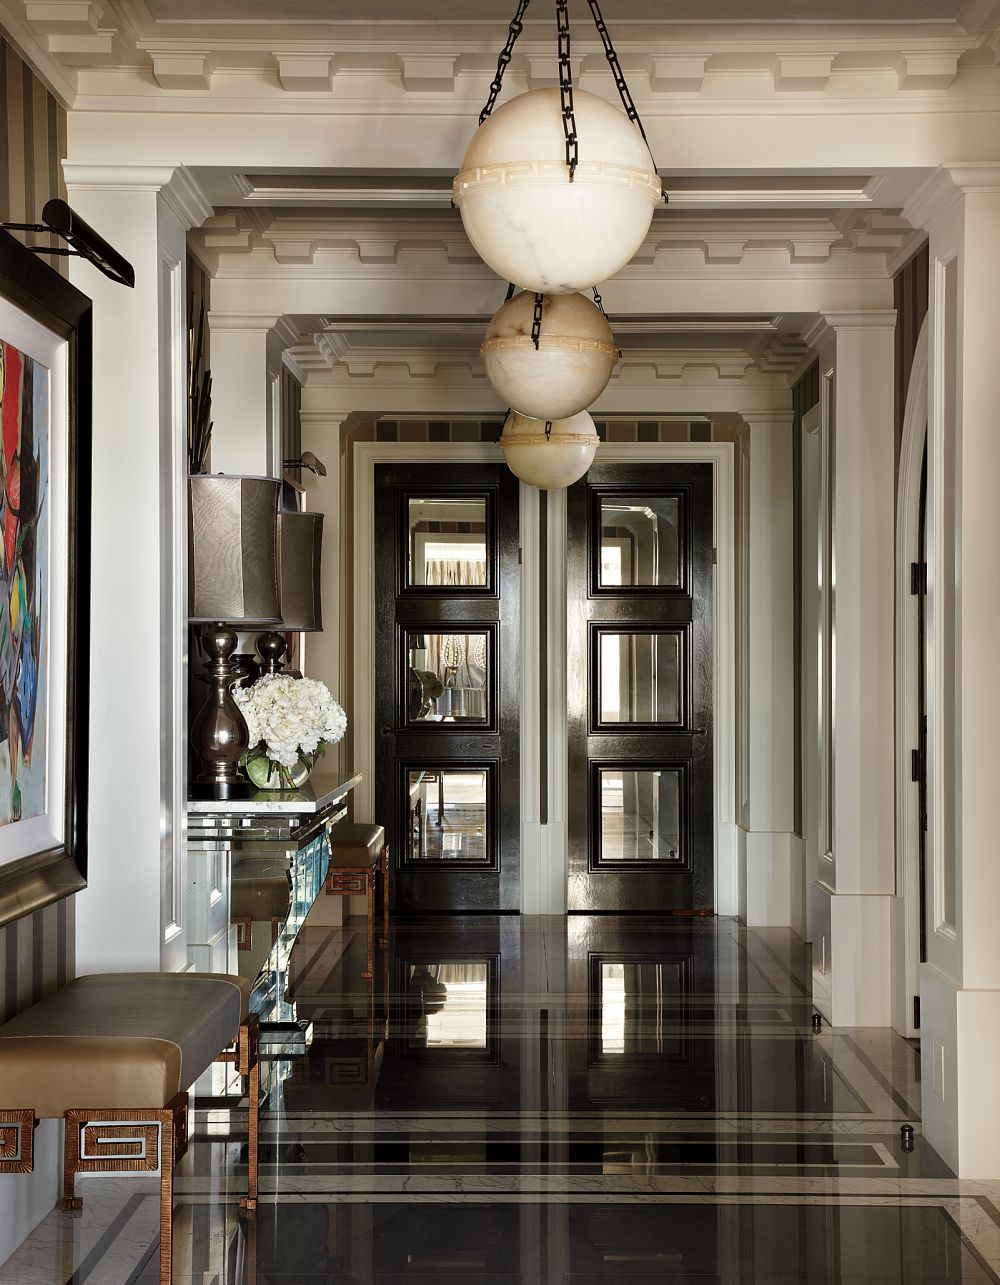 Art deco hallway lights  Traditional Entrance Hall by JeanLouis Deniot in Chicago Illinois